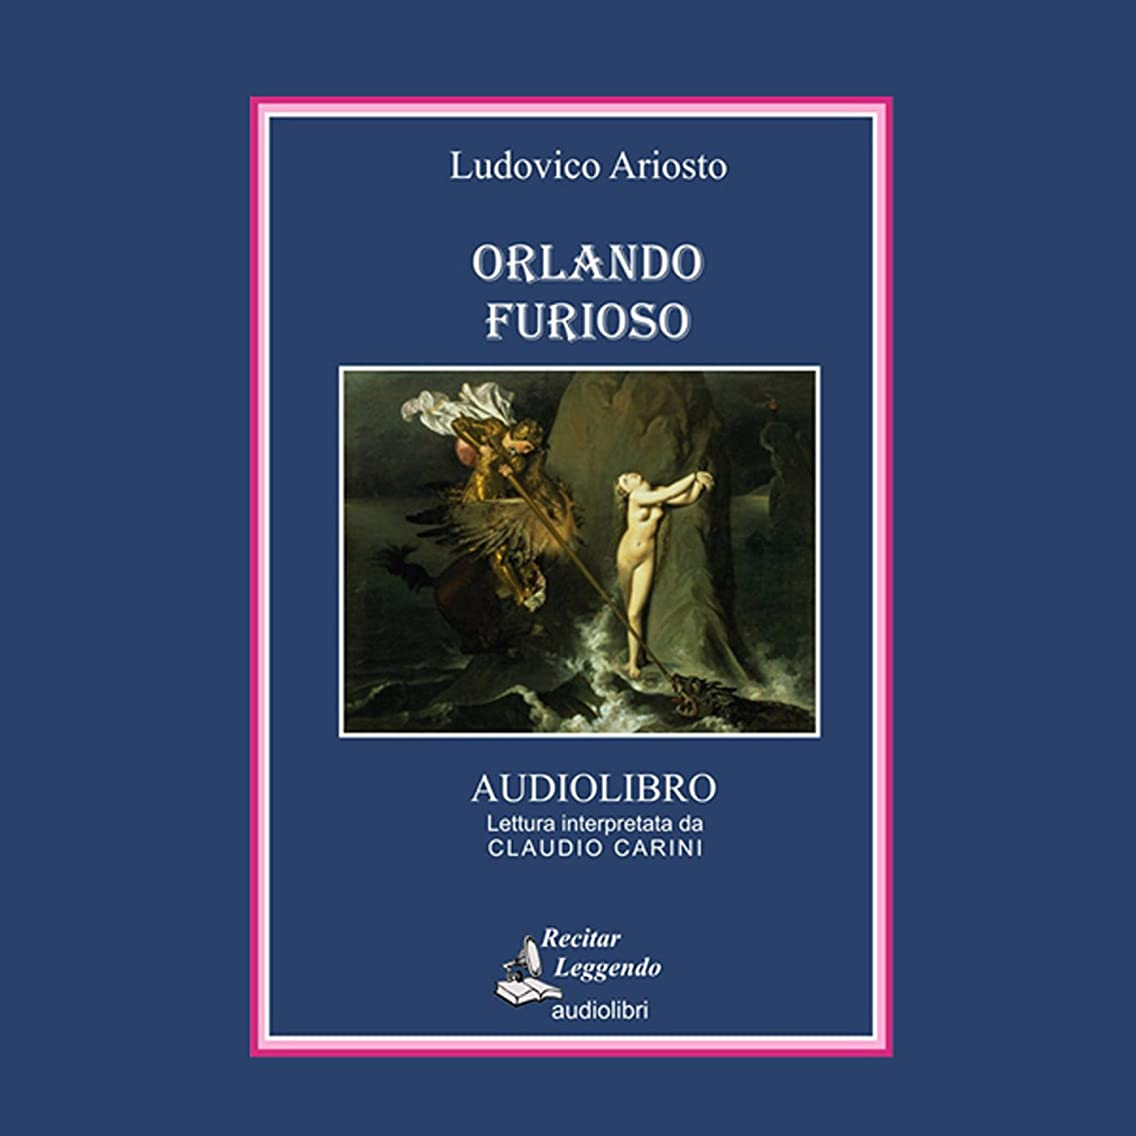 Orlando Furioso (The Frenzy of Orlando)